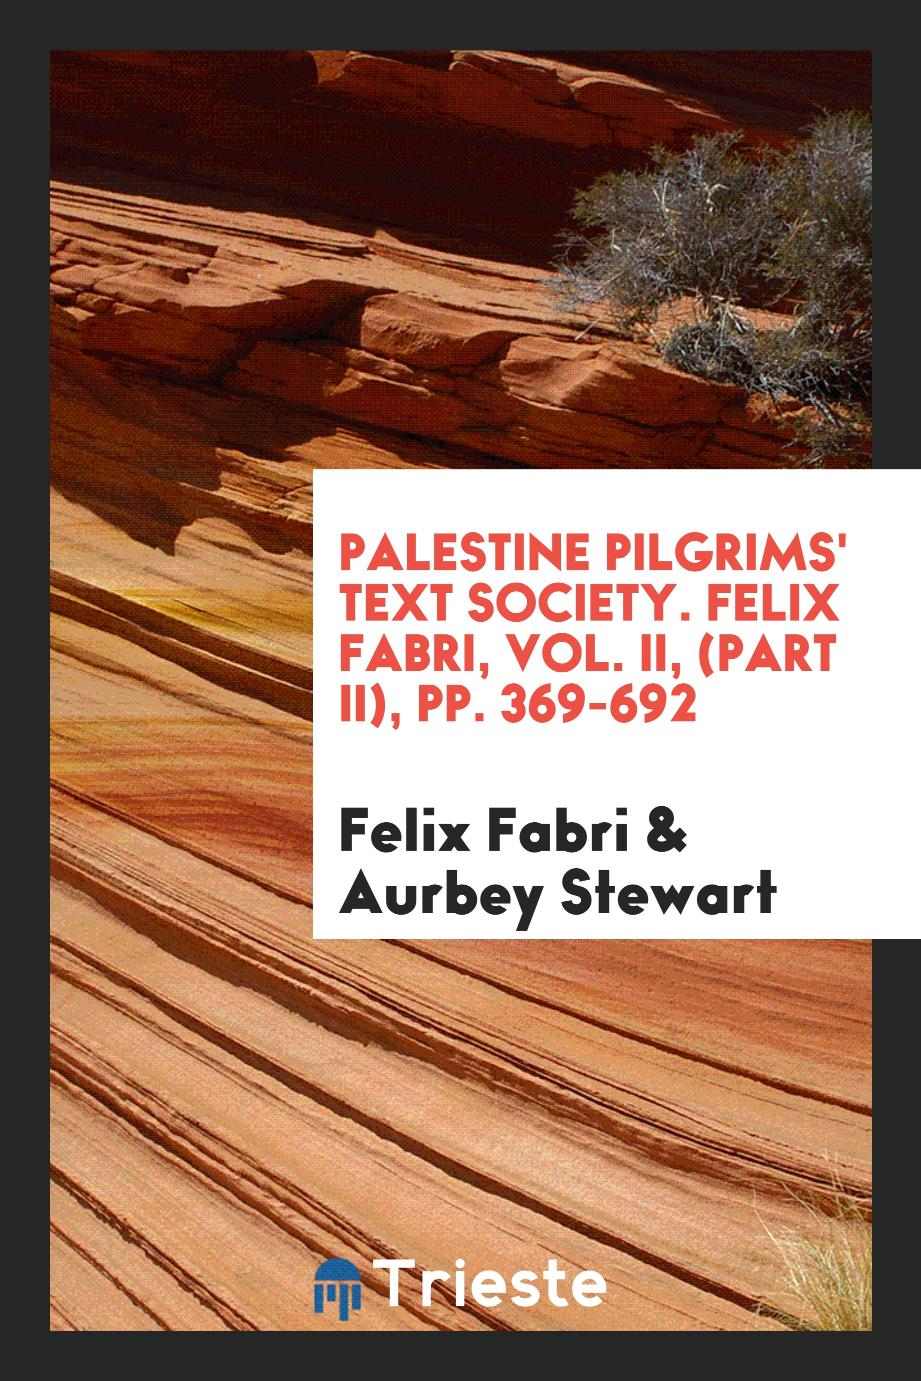 Palestine Pilgrims' Text Society. Felix Fabri, Vol. II, (Part II), pp. 369-692